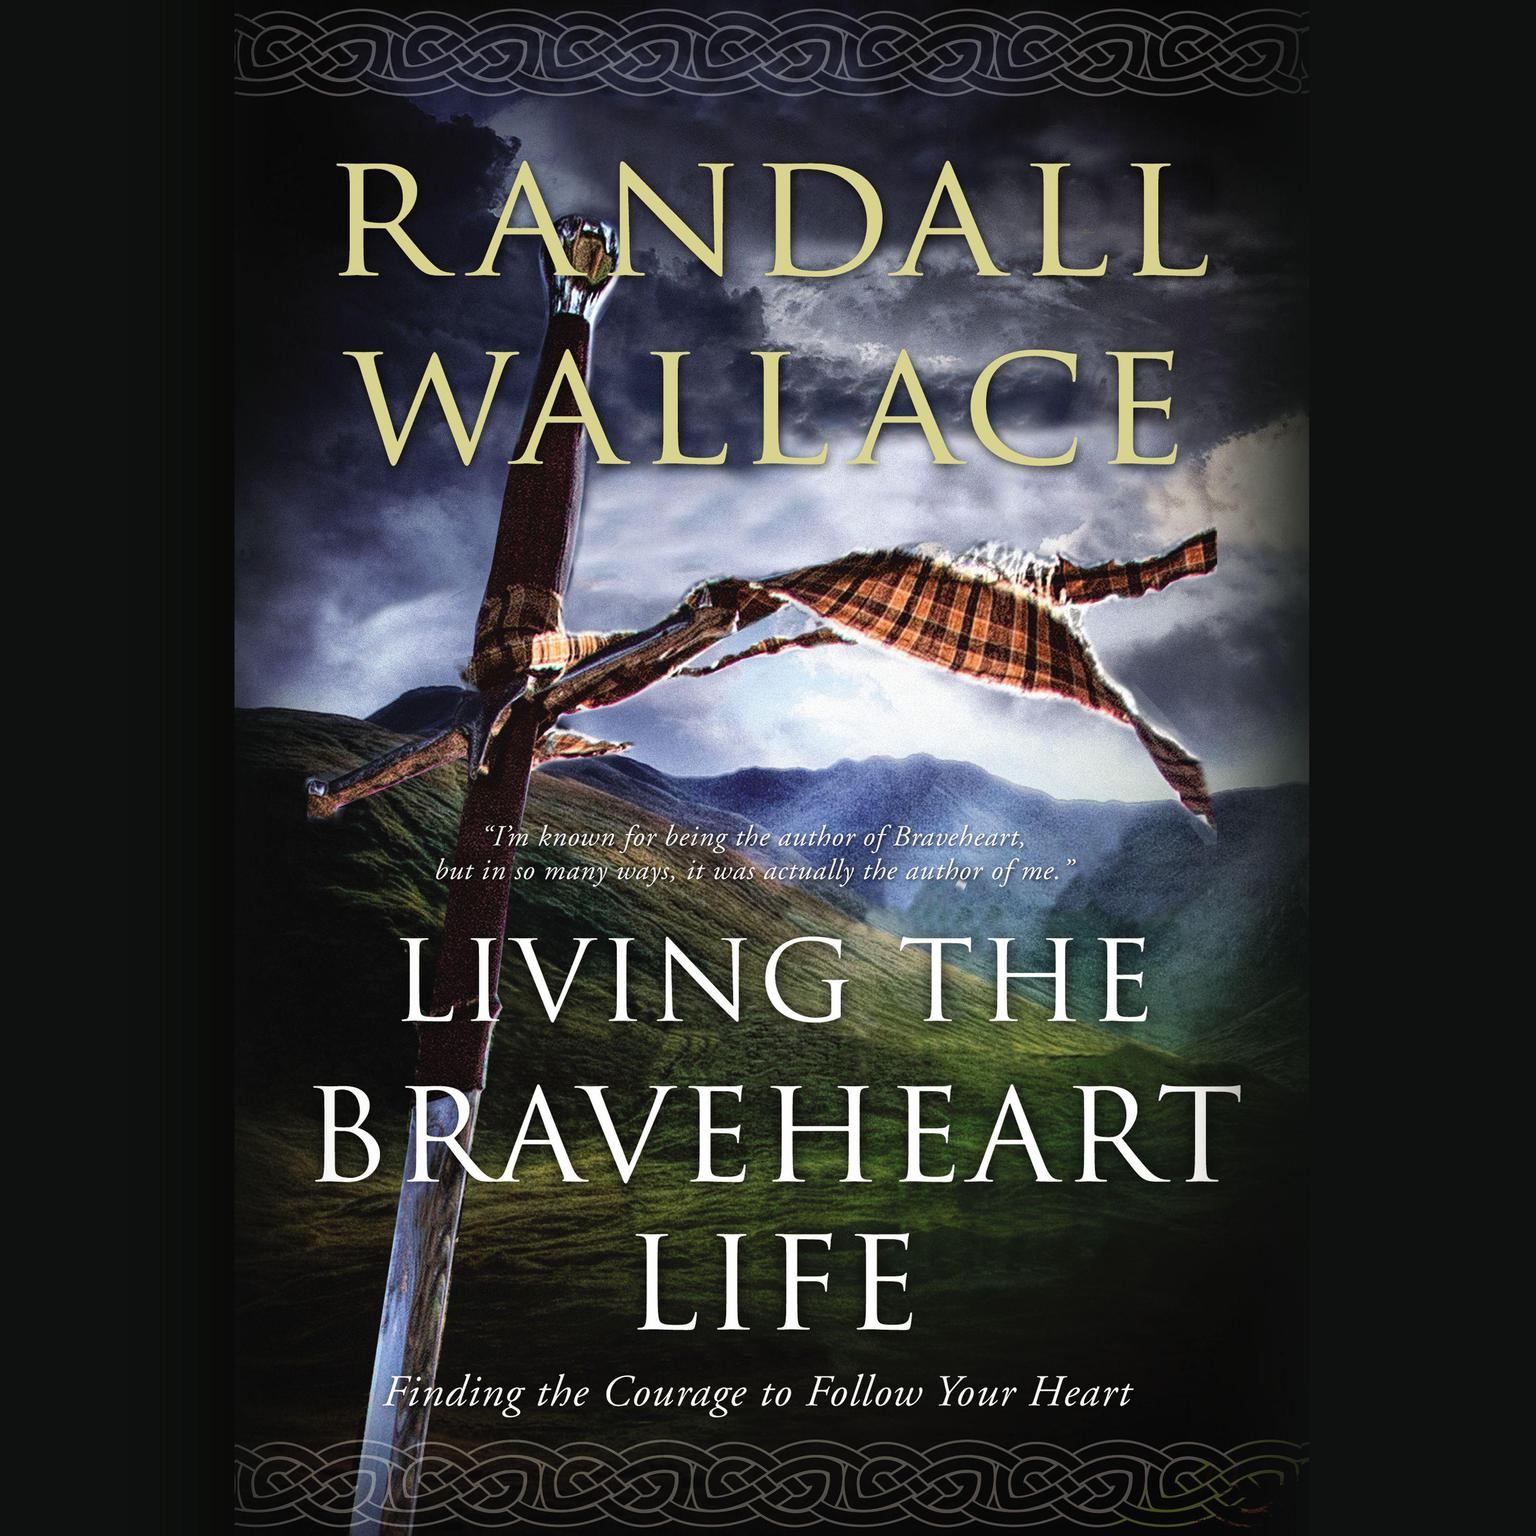 Printable Living the Braveheart Life: Finding the Courage to Follow Your Heart Audiobook Cover Art